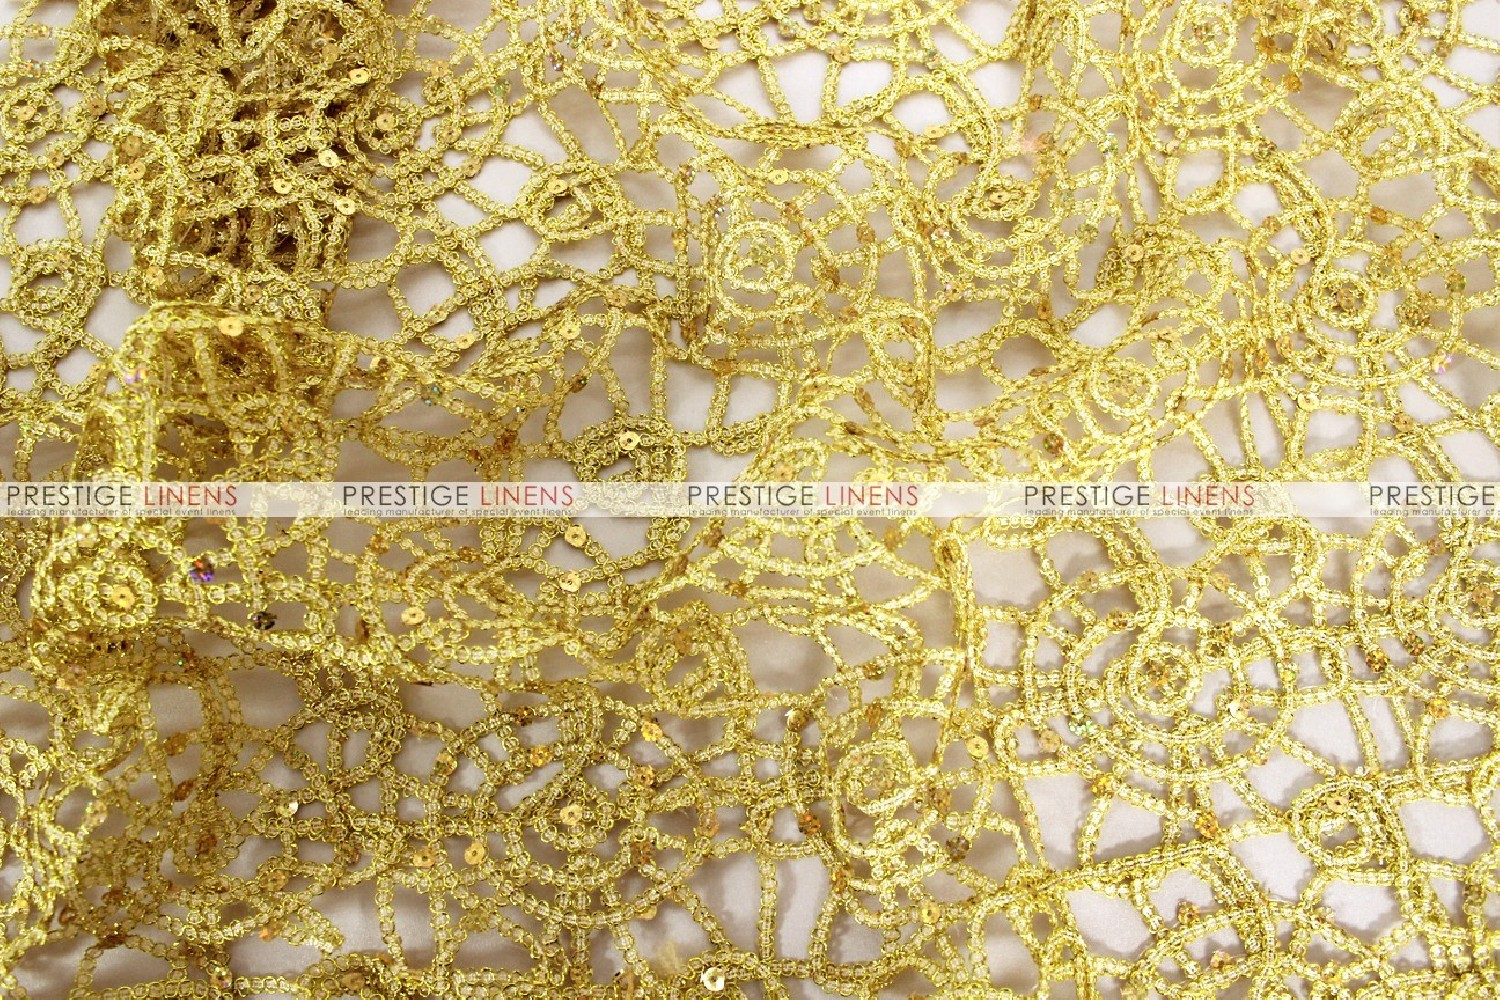 Chemical lace fabric by the yard gold prestige linens for Cheap fabric by the yard